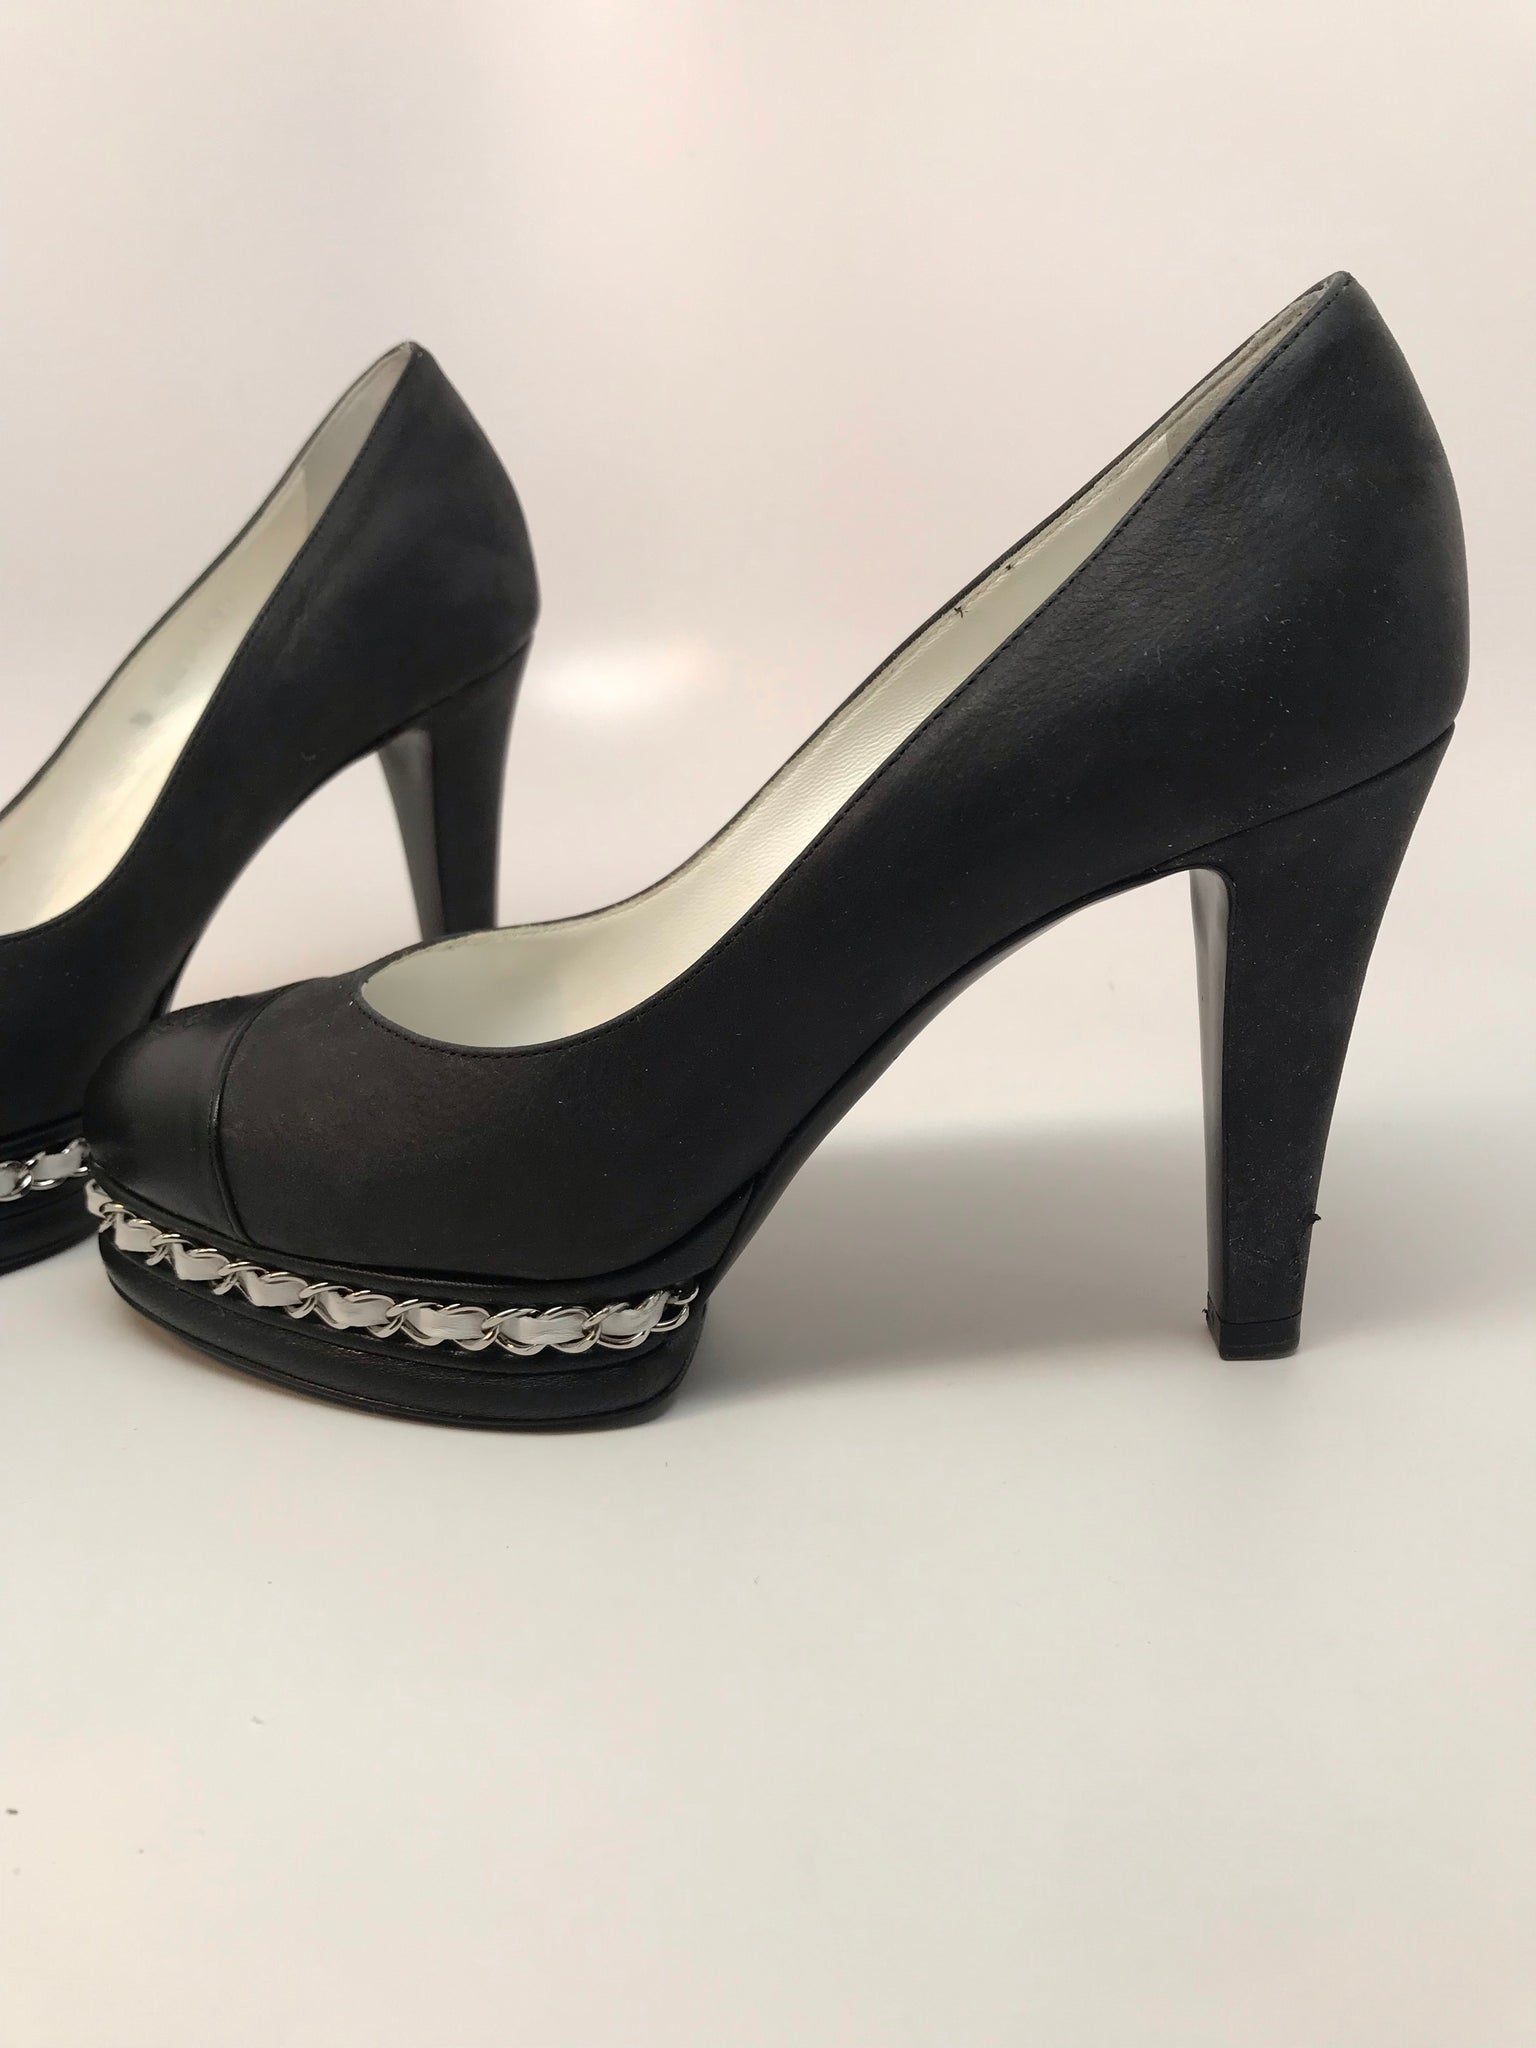 CHANEL ESCARPINS LEATHER PUMP WITH GROSGRAIN CHAIN - SIZE 35.5